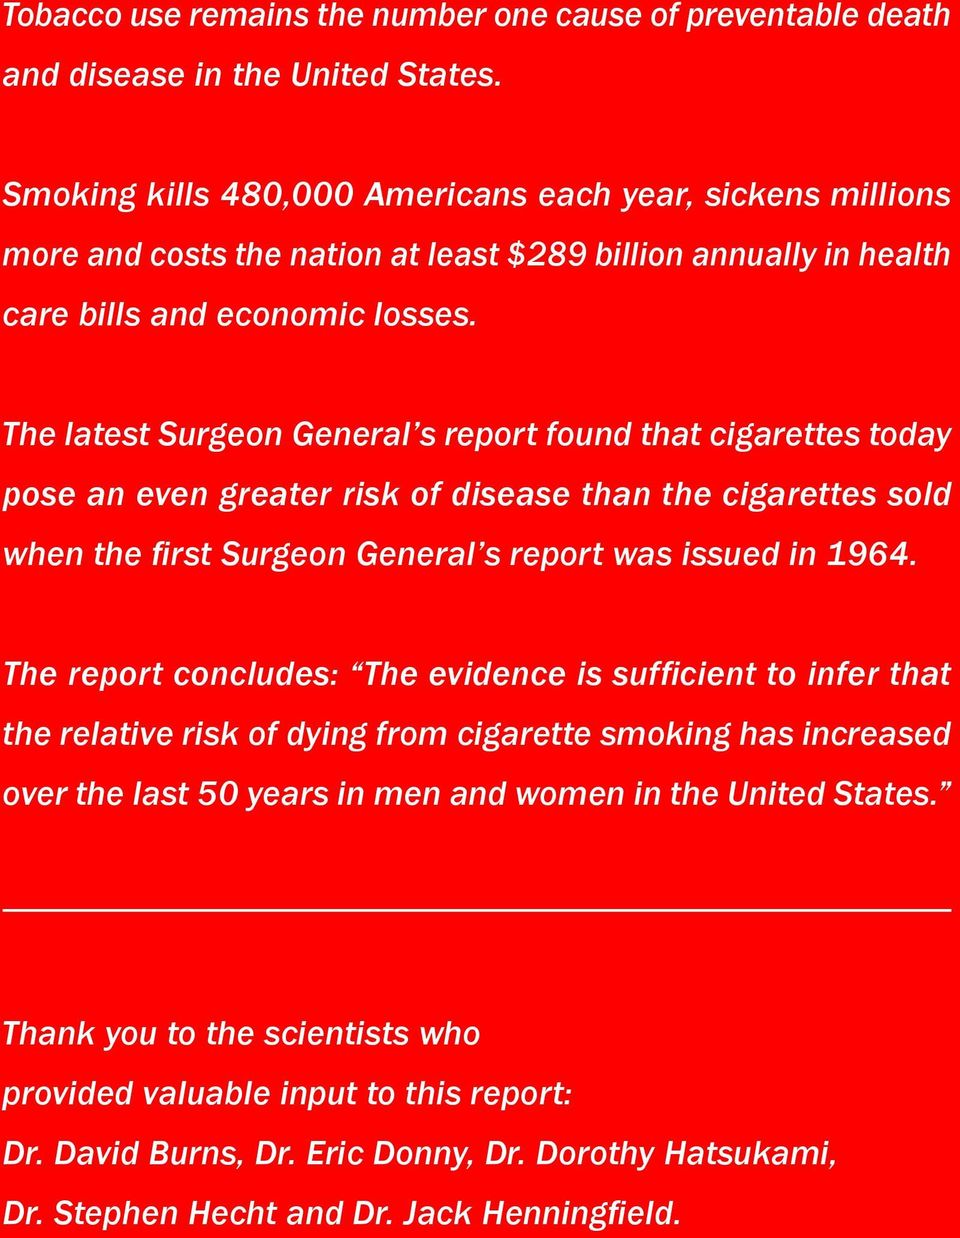 The latest Surgeon General s report found that cigarettes today pose an even greater risk of disease than the cigarettes sold when the first Surgeon General s report was issued in 1964.